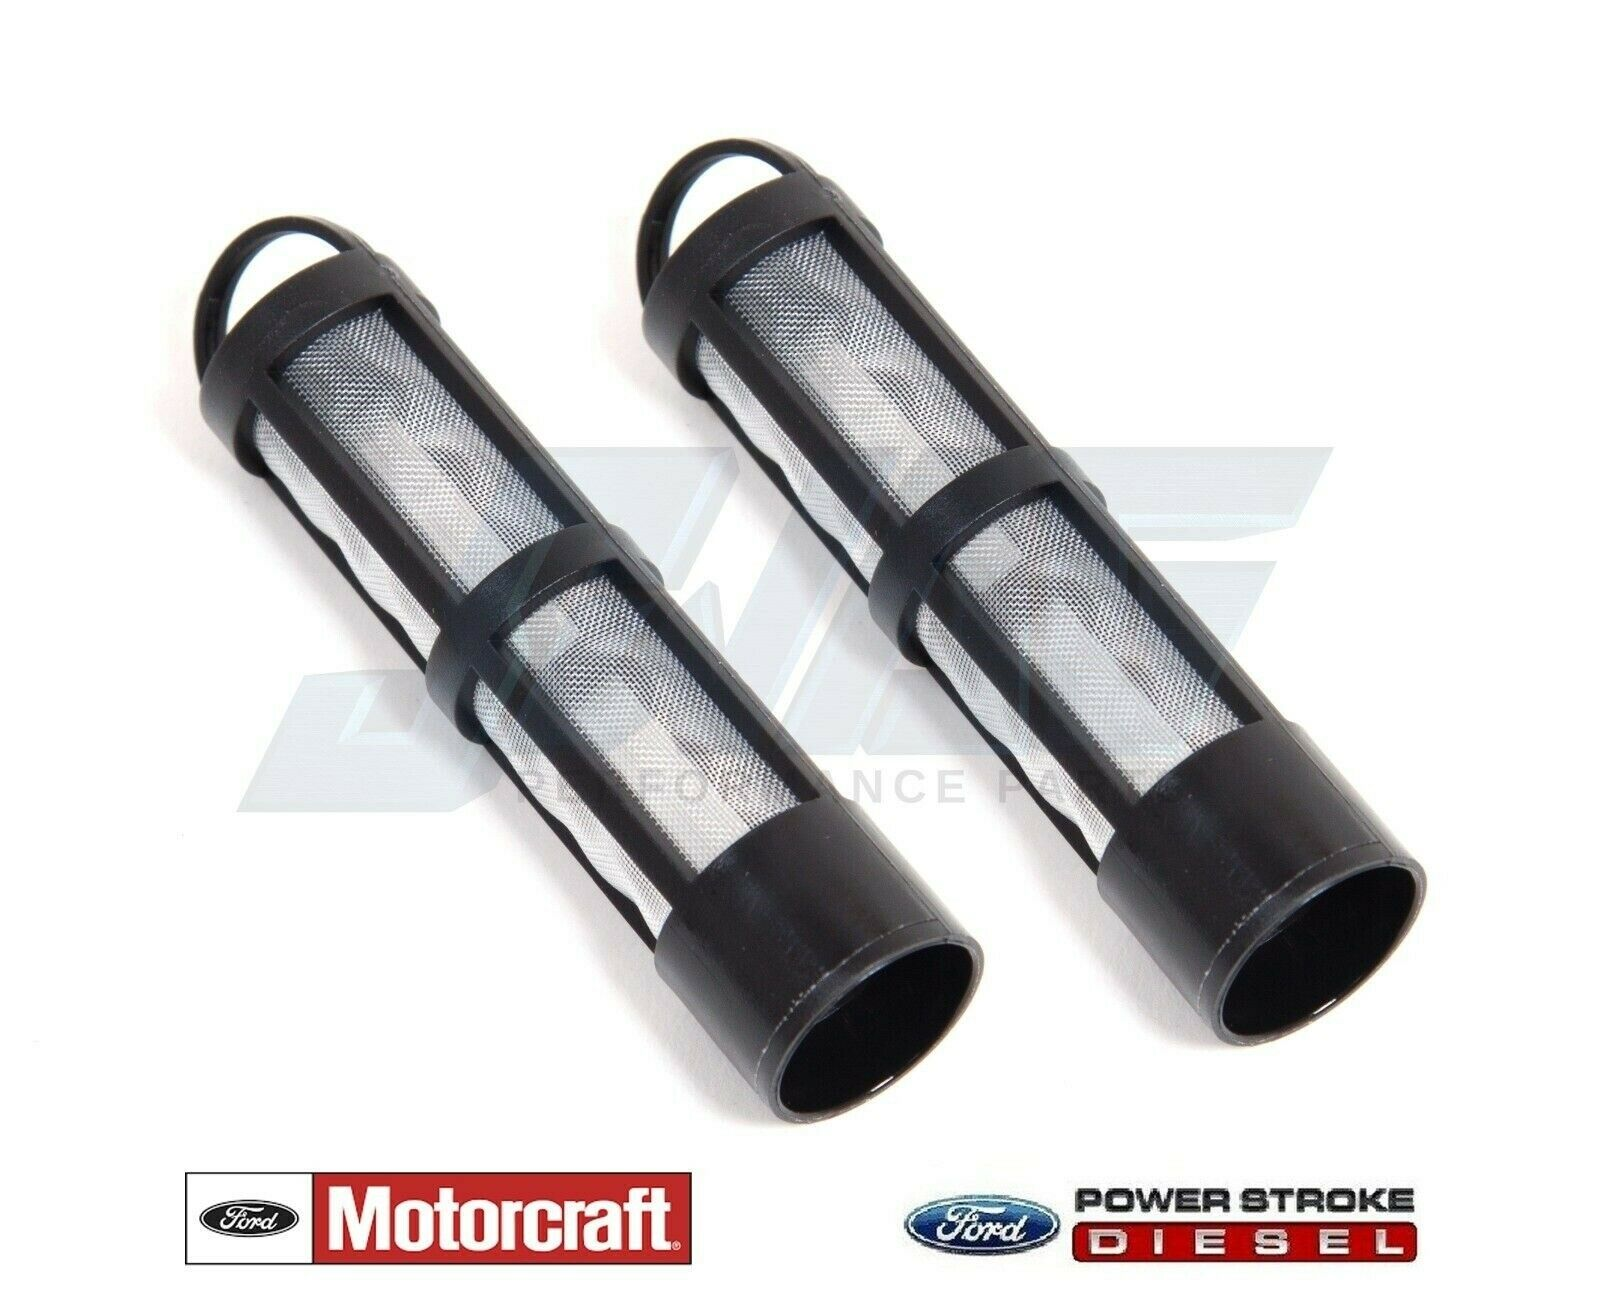 New Oem Ford Motorcraft Powerstroke Fuel Filter 4c4z 9365 Ba Fd 1 Of 1free Shipping